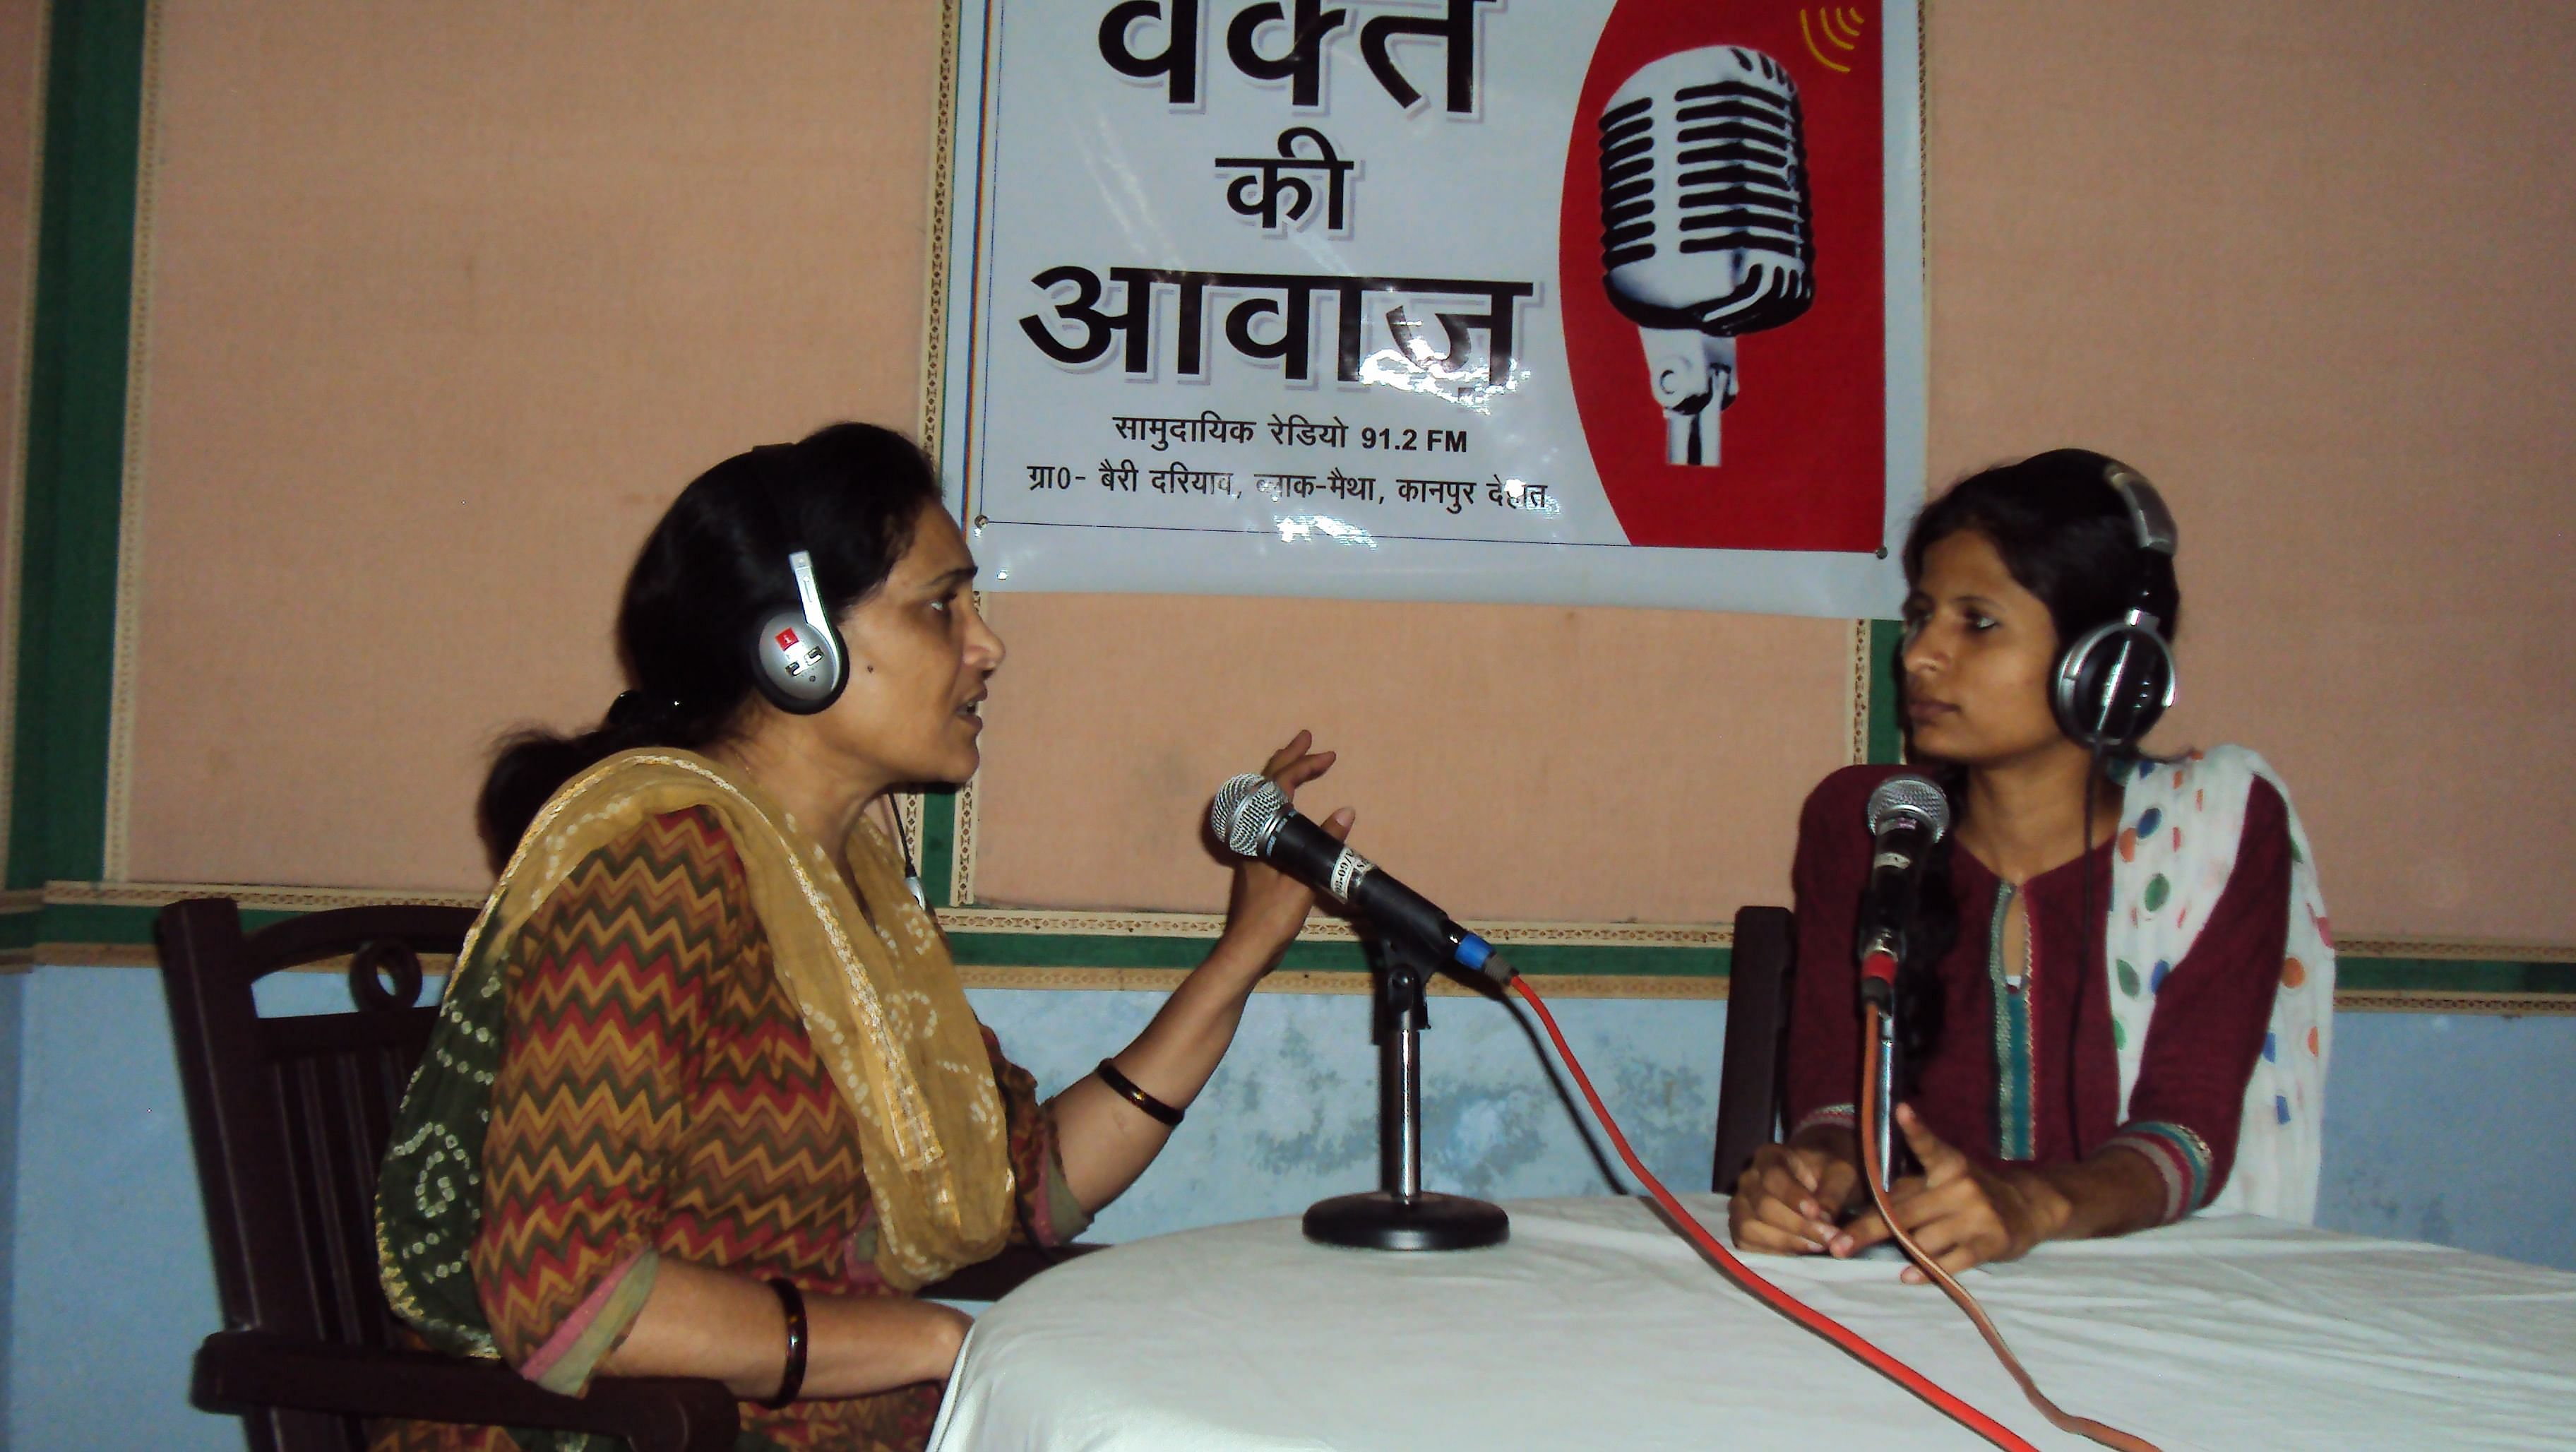 Radha Shukla (left) is the station manager of Waqt Ki Awaaz, which broadcasts programmes in Awadhi language to 300 villages in the Kanpur Dehat district in Uttar Pradesh. (Courtesy: Sharamik Bharti)